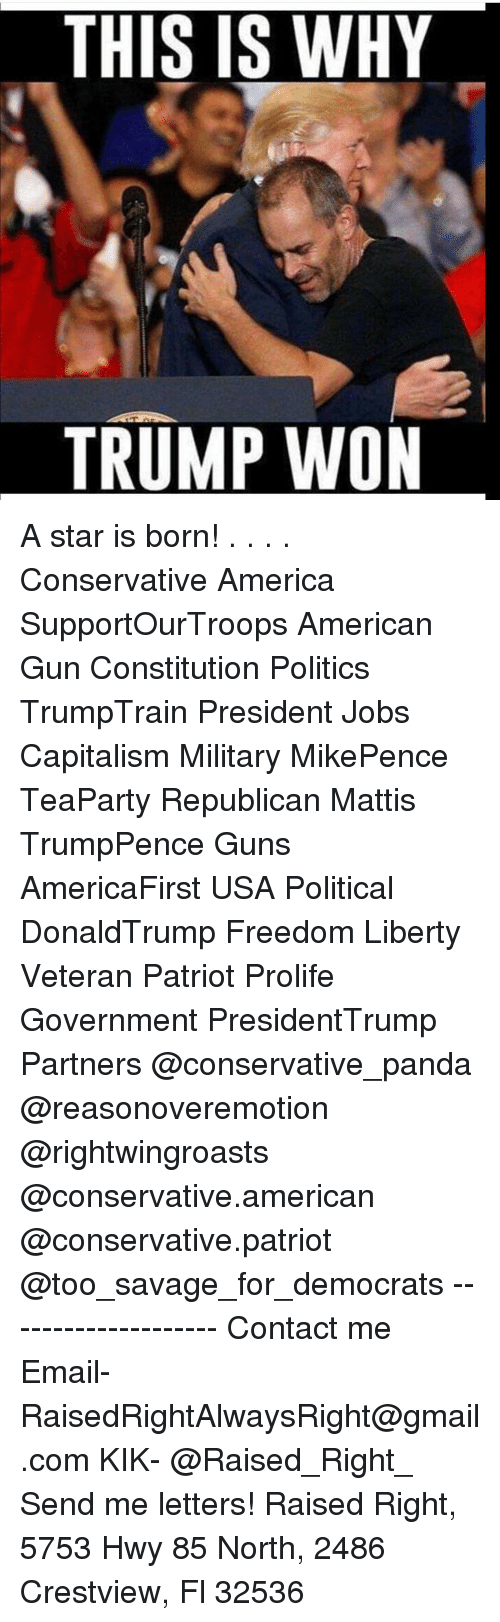 America, Guns, and Memes: THIS IS WHY  TRUMP WON A star is born! . . . . Conservative America SupportOurTroops American Gun Constitution Politics TrumpTrain President Jobs Capitalism Military MikePence TeaParty Republican Mattis TrumpPence Guns AmericaFirst USA Political DonaldTrump Freedom Liberty Veteran Patriot Prolife Government PresidentTrump Partners @conservative_panda @reasonoveremotion @rightwingroasts @conservative.american @conservative.patriot @too_savage_for_democrats -------------------- Contact me ●Email- RaisedRightAlwaysRight@gmail.com ●KIK- @Raised_Right_ ●Send me letters! Raised Right, 5753 Hwy 85 North, 2486 Crestview, Fl 32536